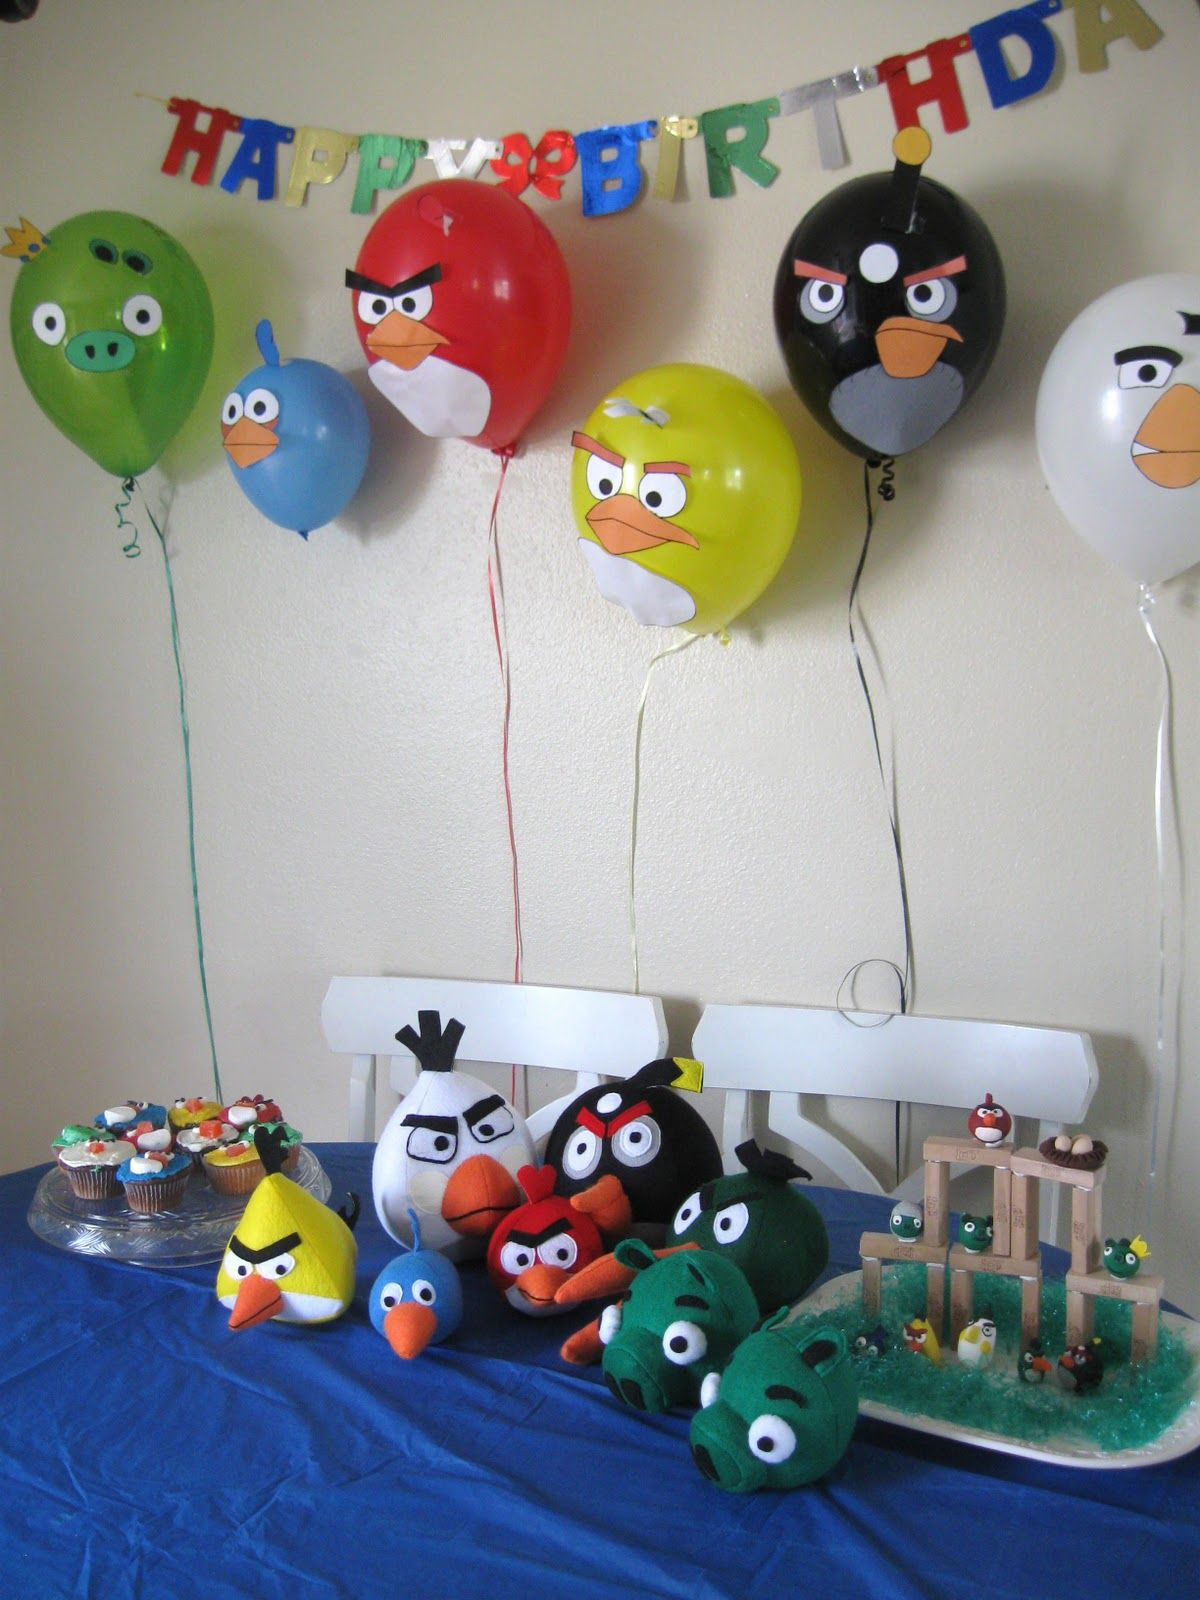 Angry birds balloons birthday party ideas pinterest for Angry bird birthday decoration ideas